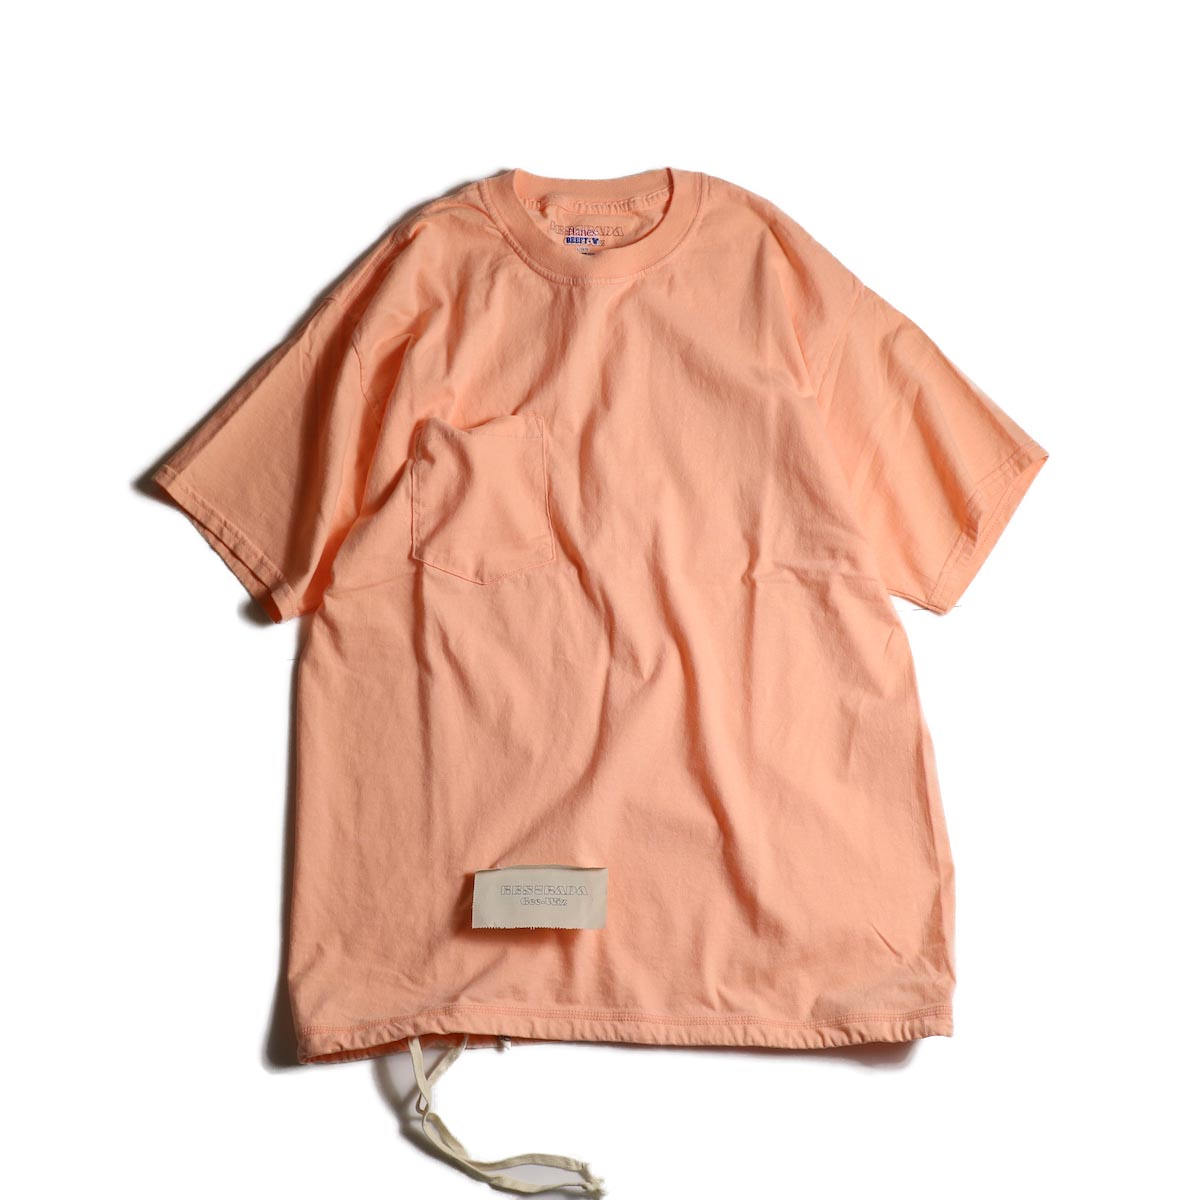 HESTRADA GEE-WIZ / SWITCH S/S Tee (Candy Orange)正面